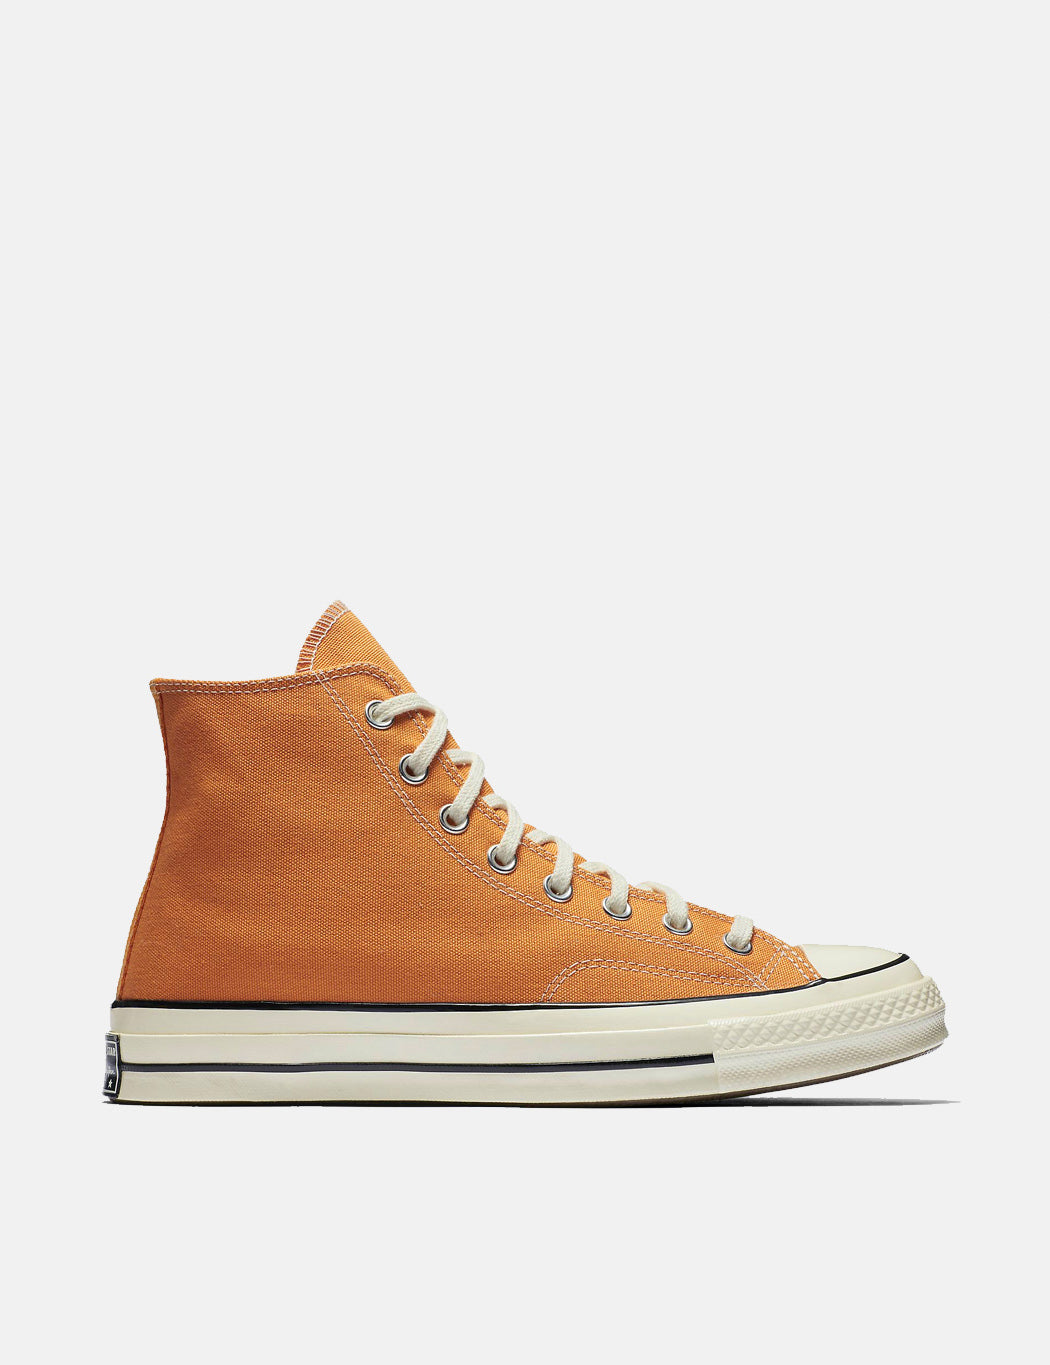 ebdcbf89a915 ... low price converse 70s chuck hi 159622c canvas tangelo orange black  egret 1aea4 b398b